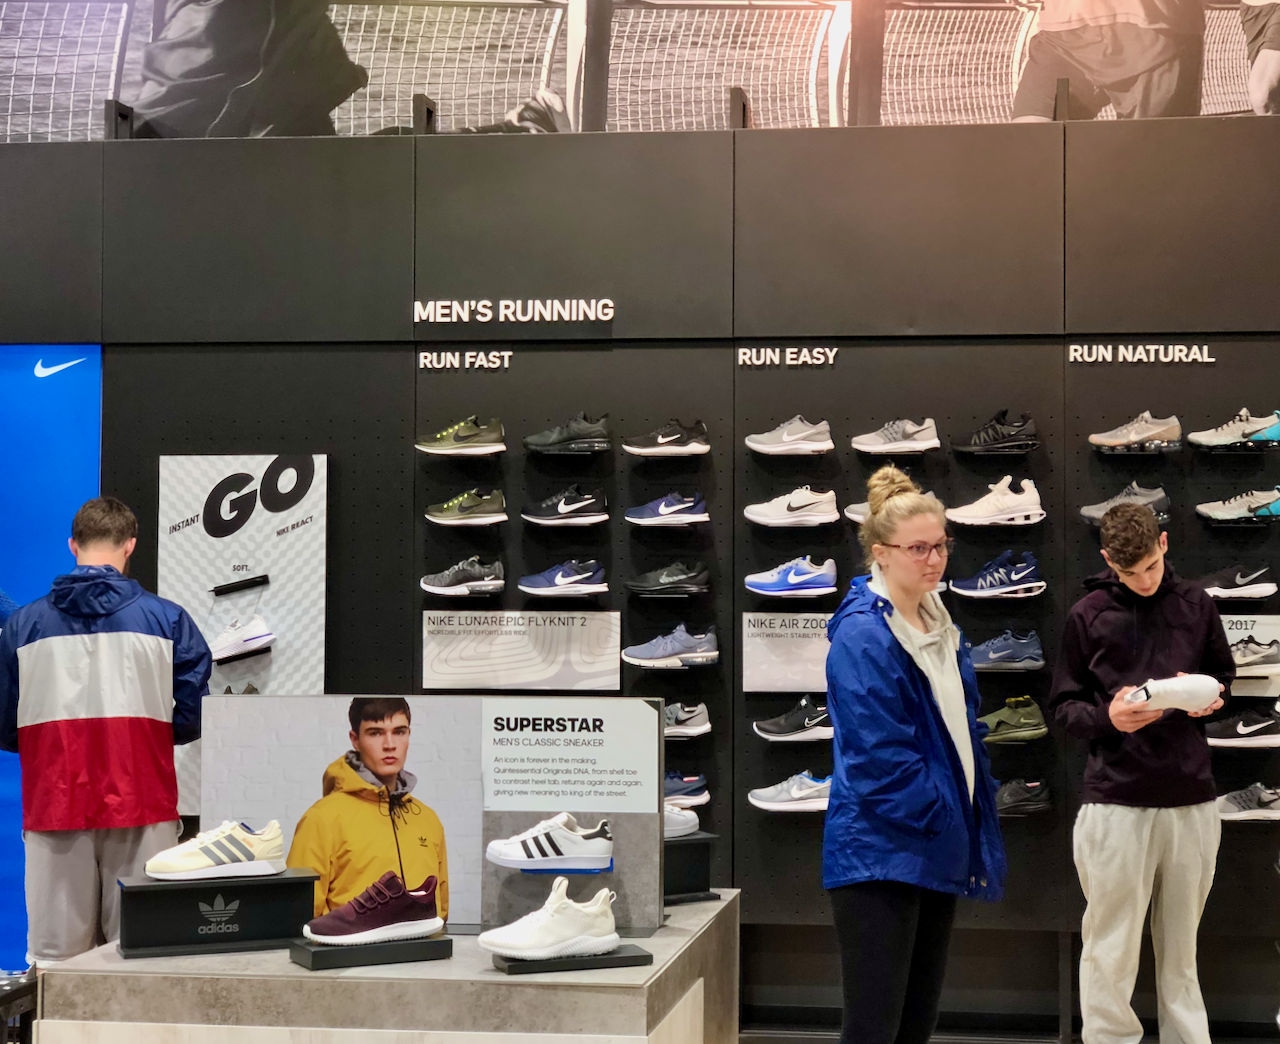 Dick's Sporting Goods shoe wall